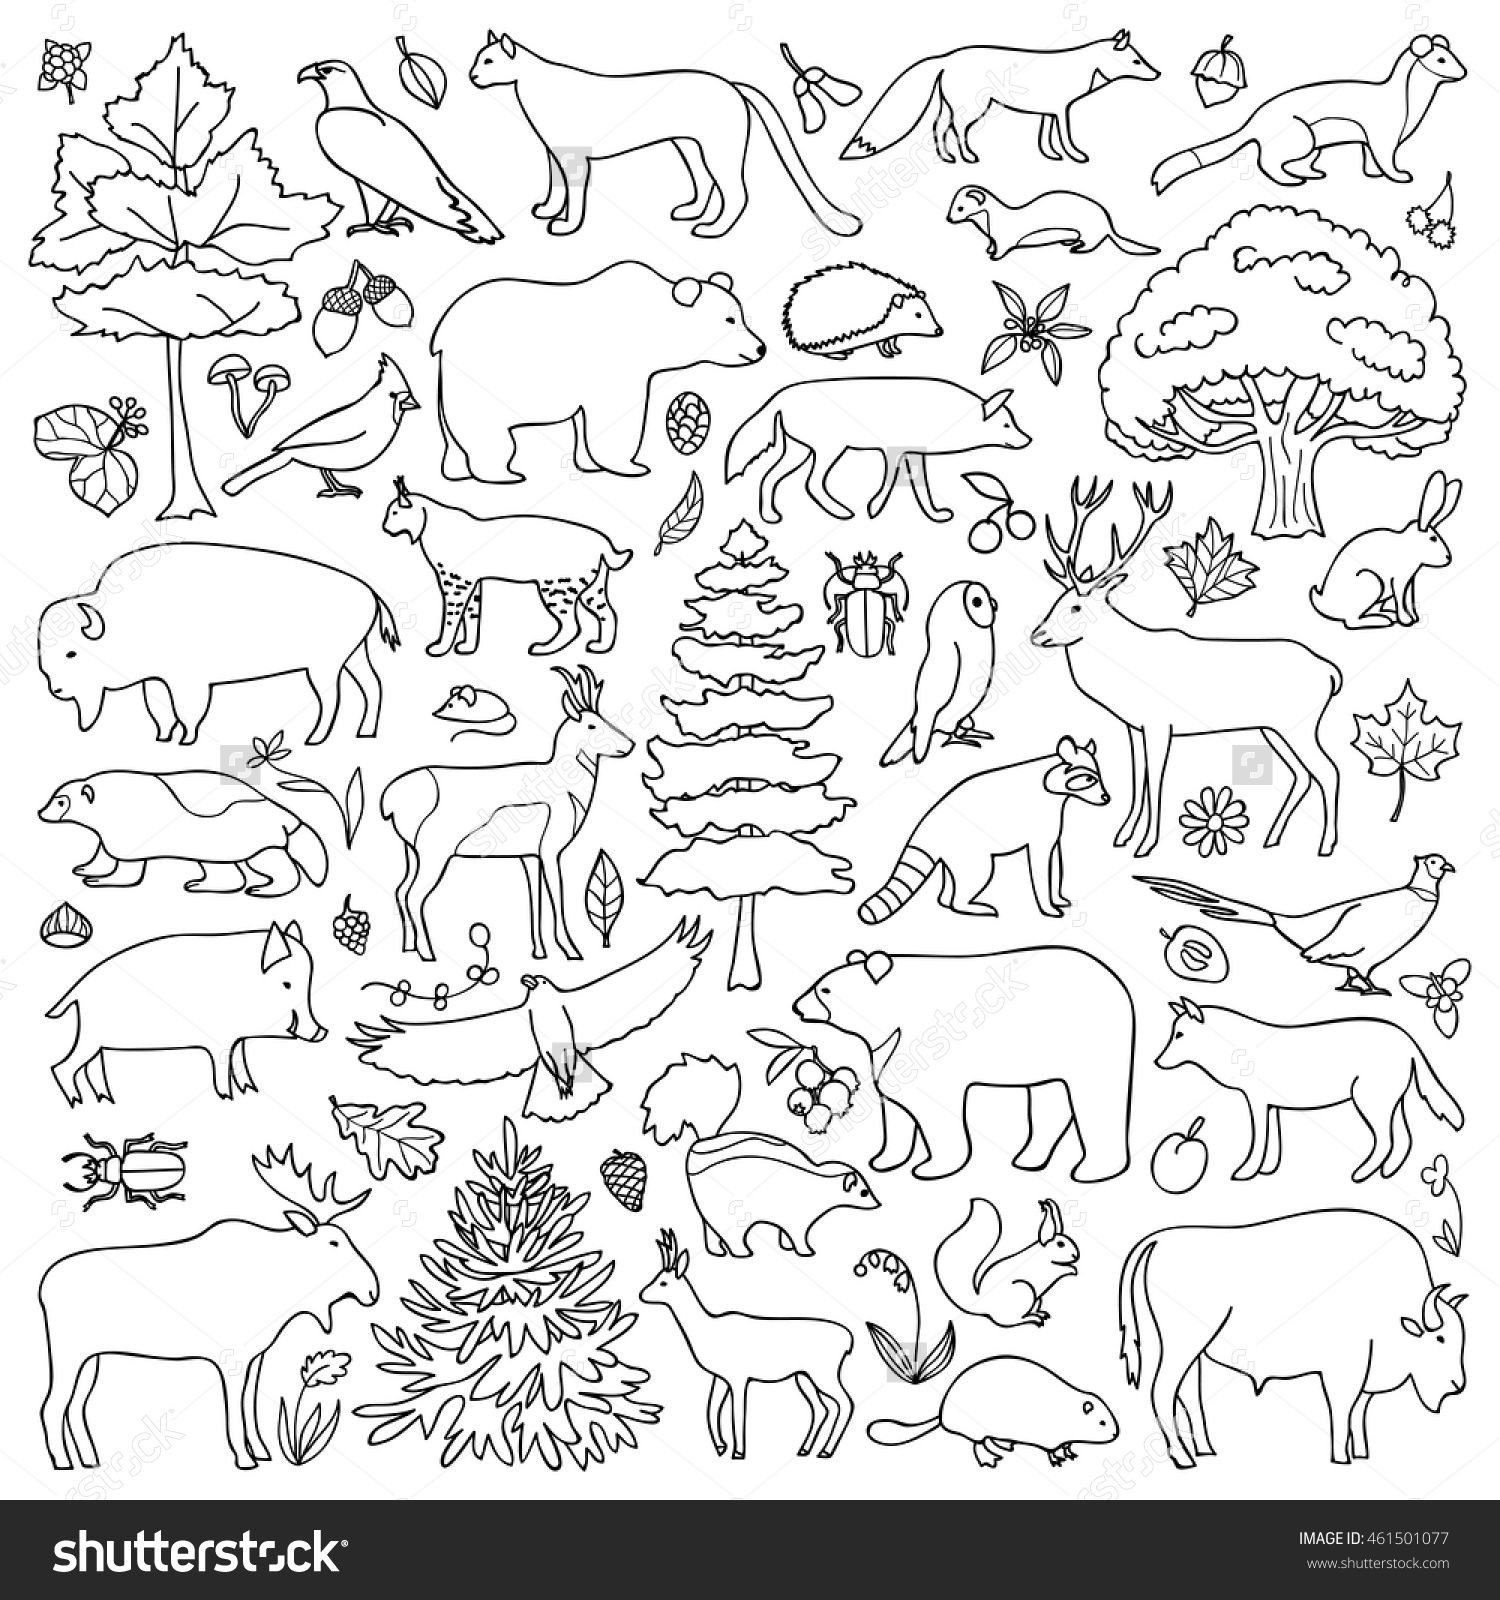 Forest Animal Coloring Pages Through The Thousand Photographs On The Internet About Fores Animal Coloring Pages Preschool Coloring Pages Forest Coloring Book